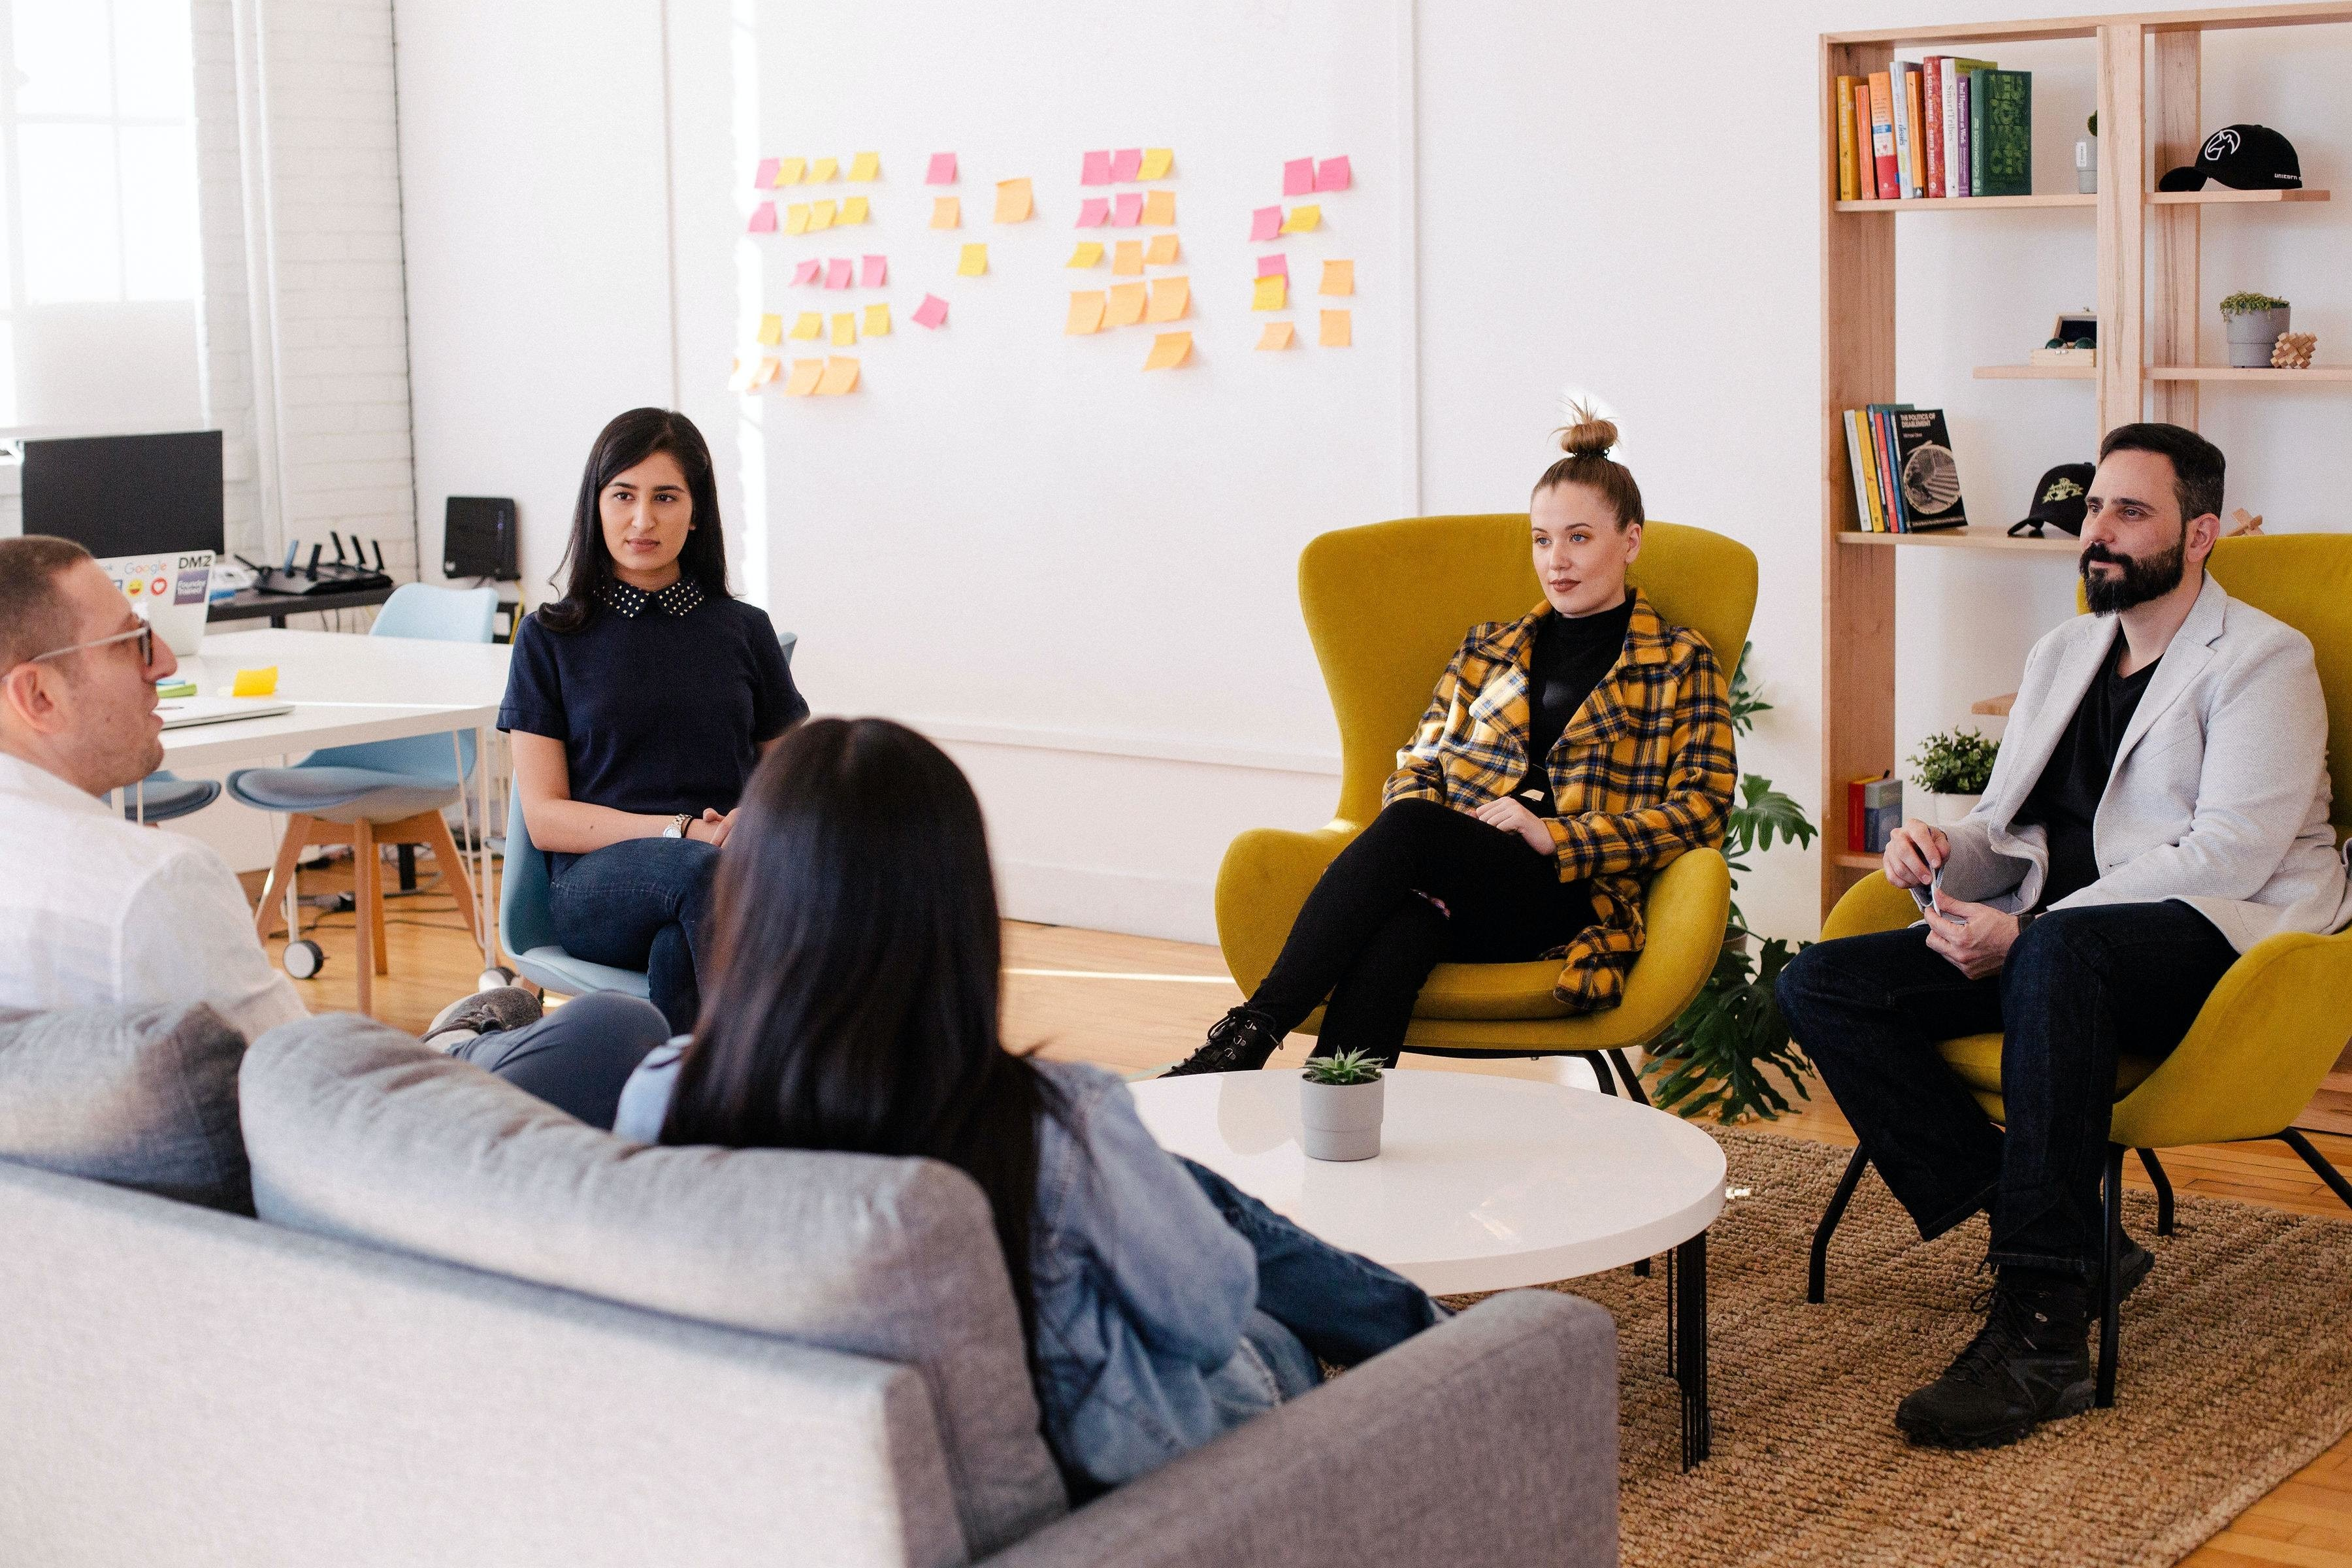 a group of young professionals sit around in an office environment